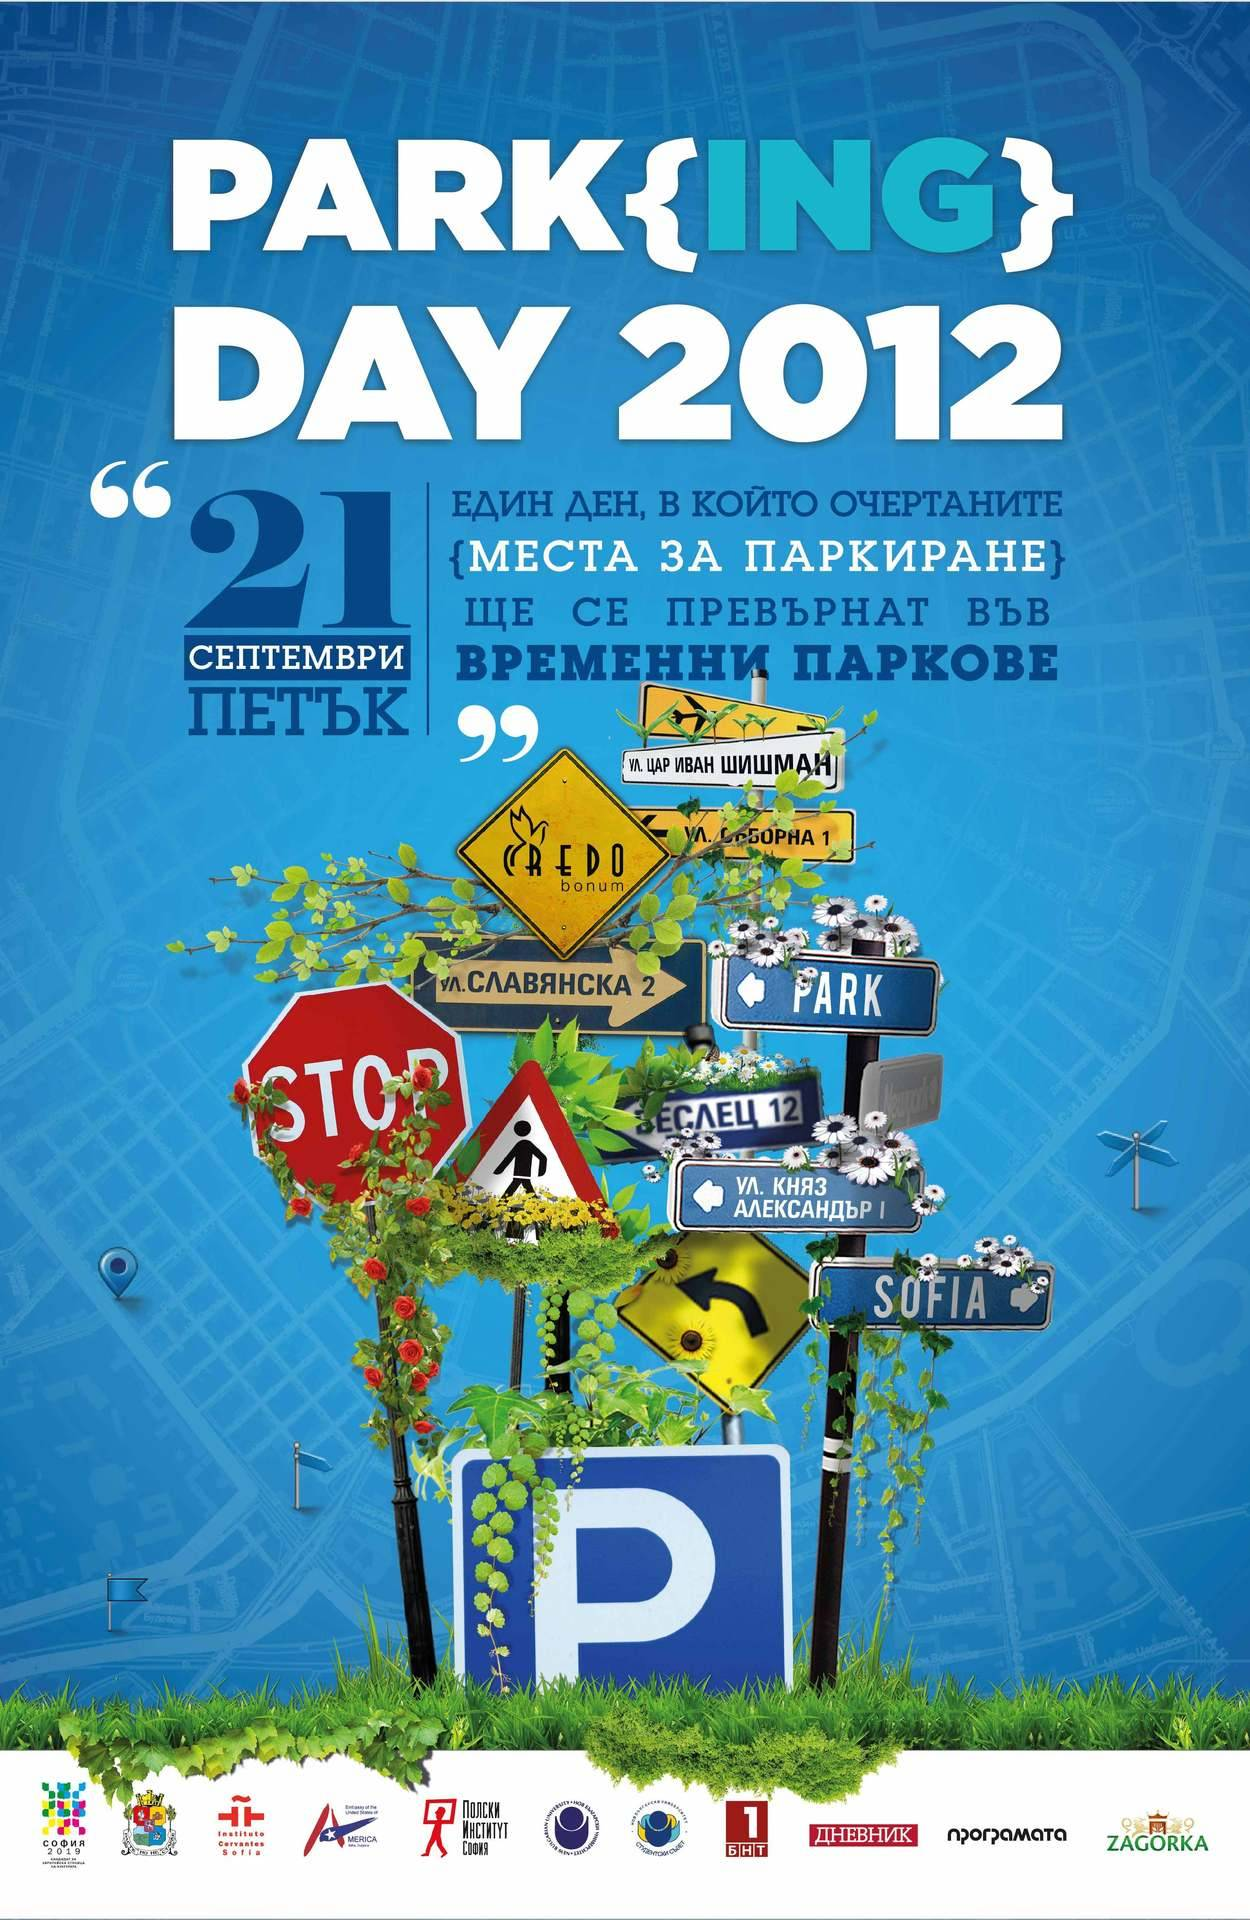 Parking Day 2 in Sofia 2012